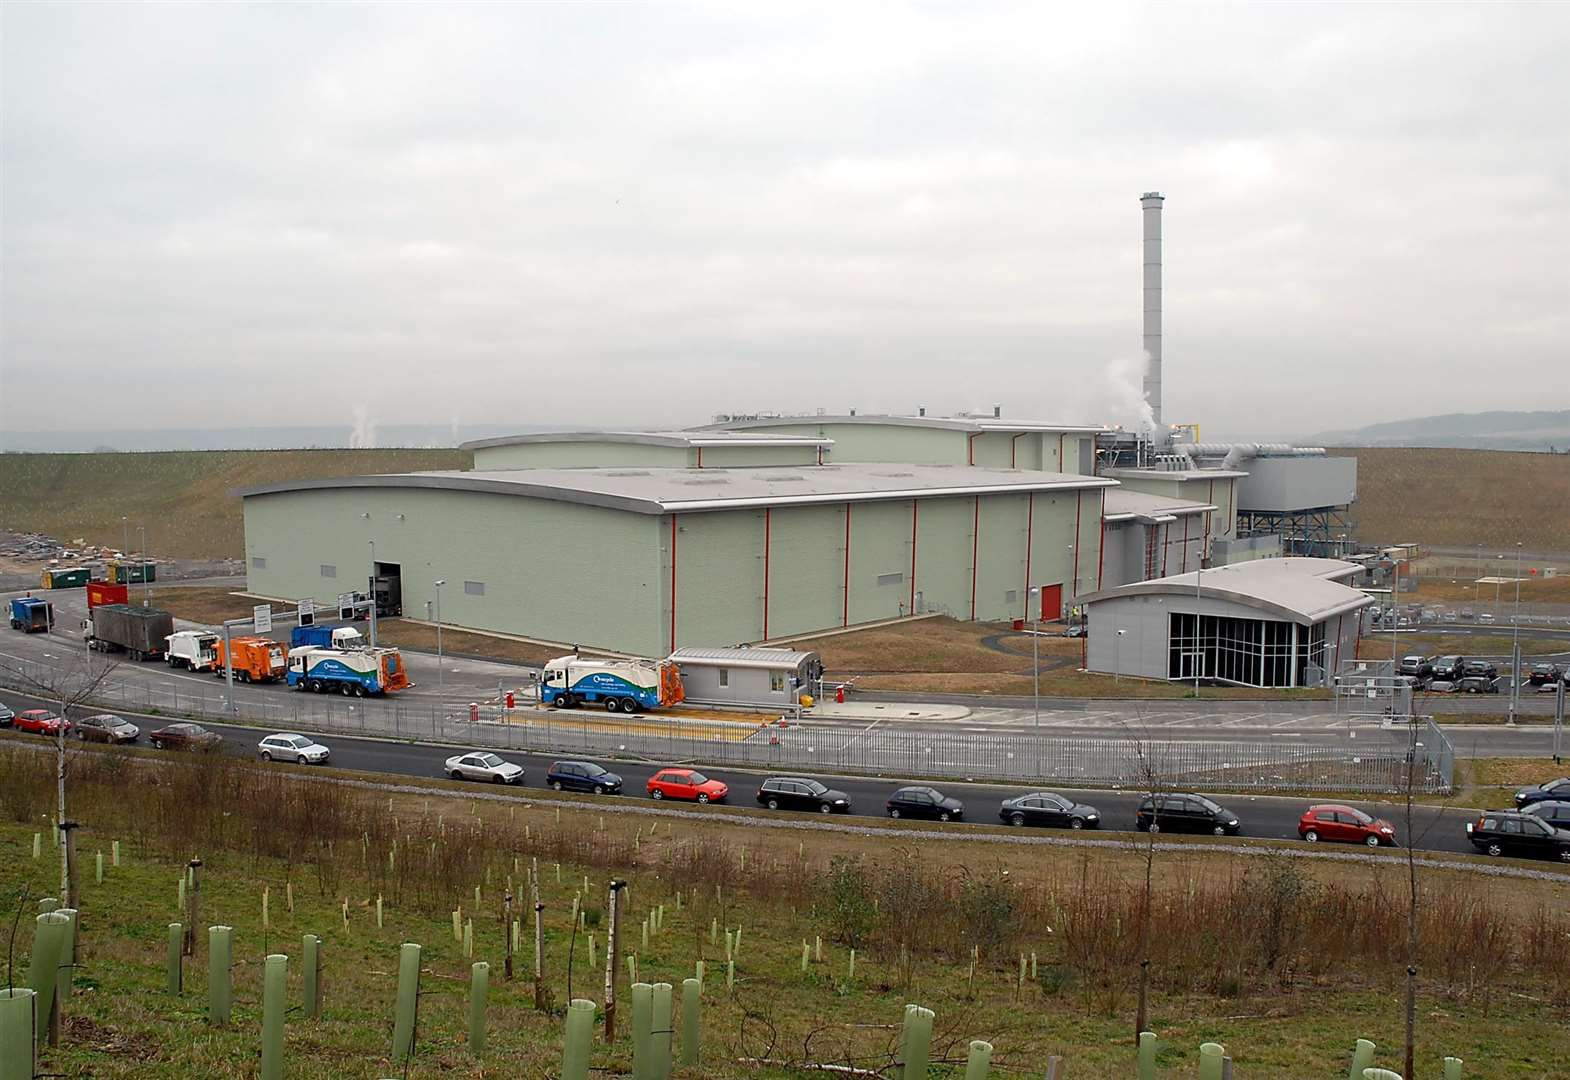 Plans for waste incinerator to burn 350,000 tonnes more a year